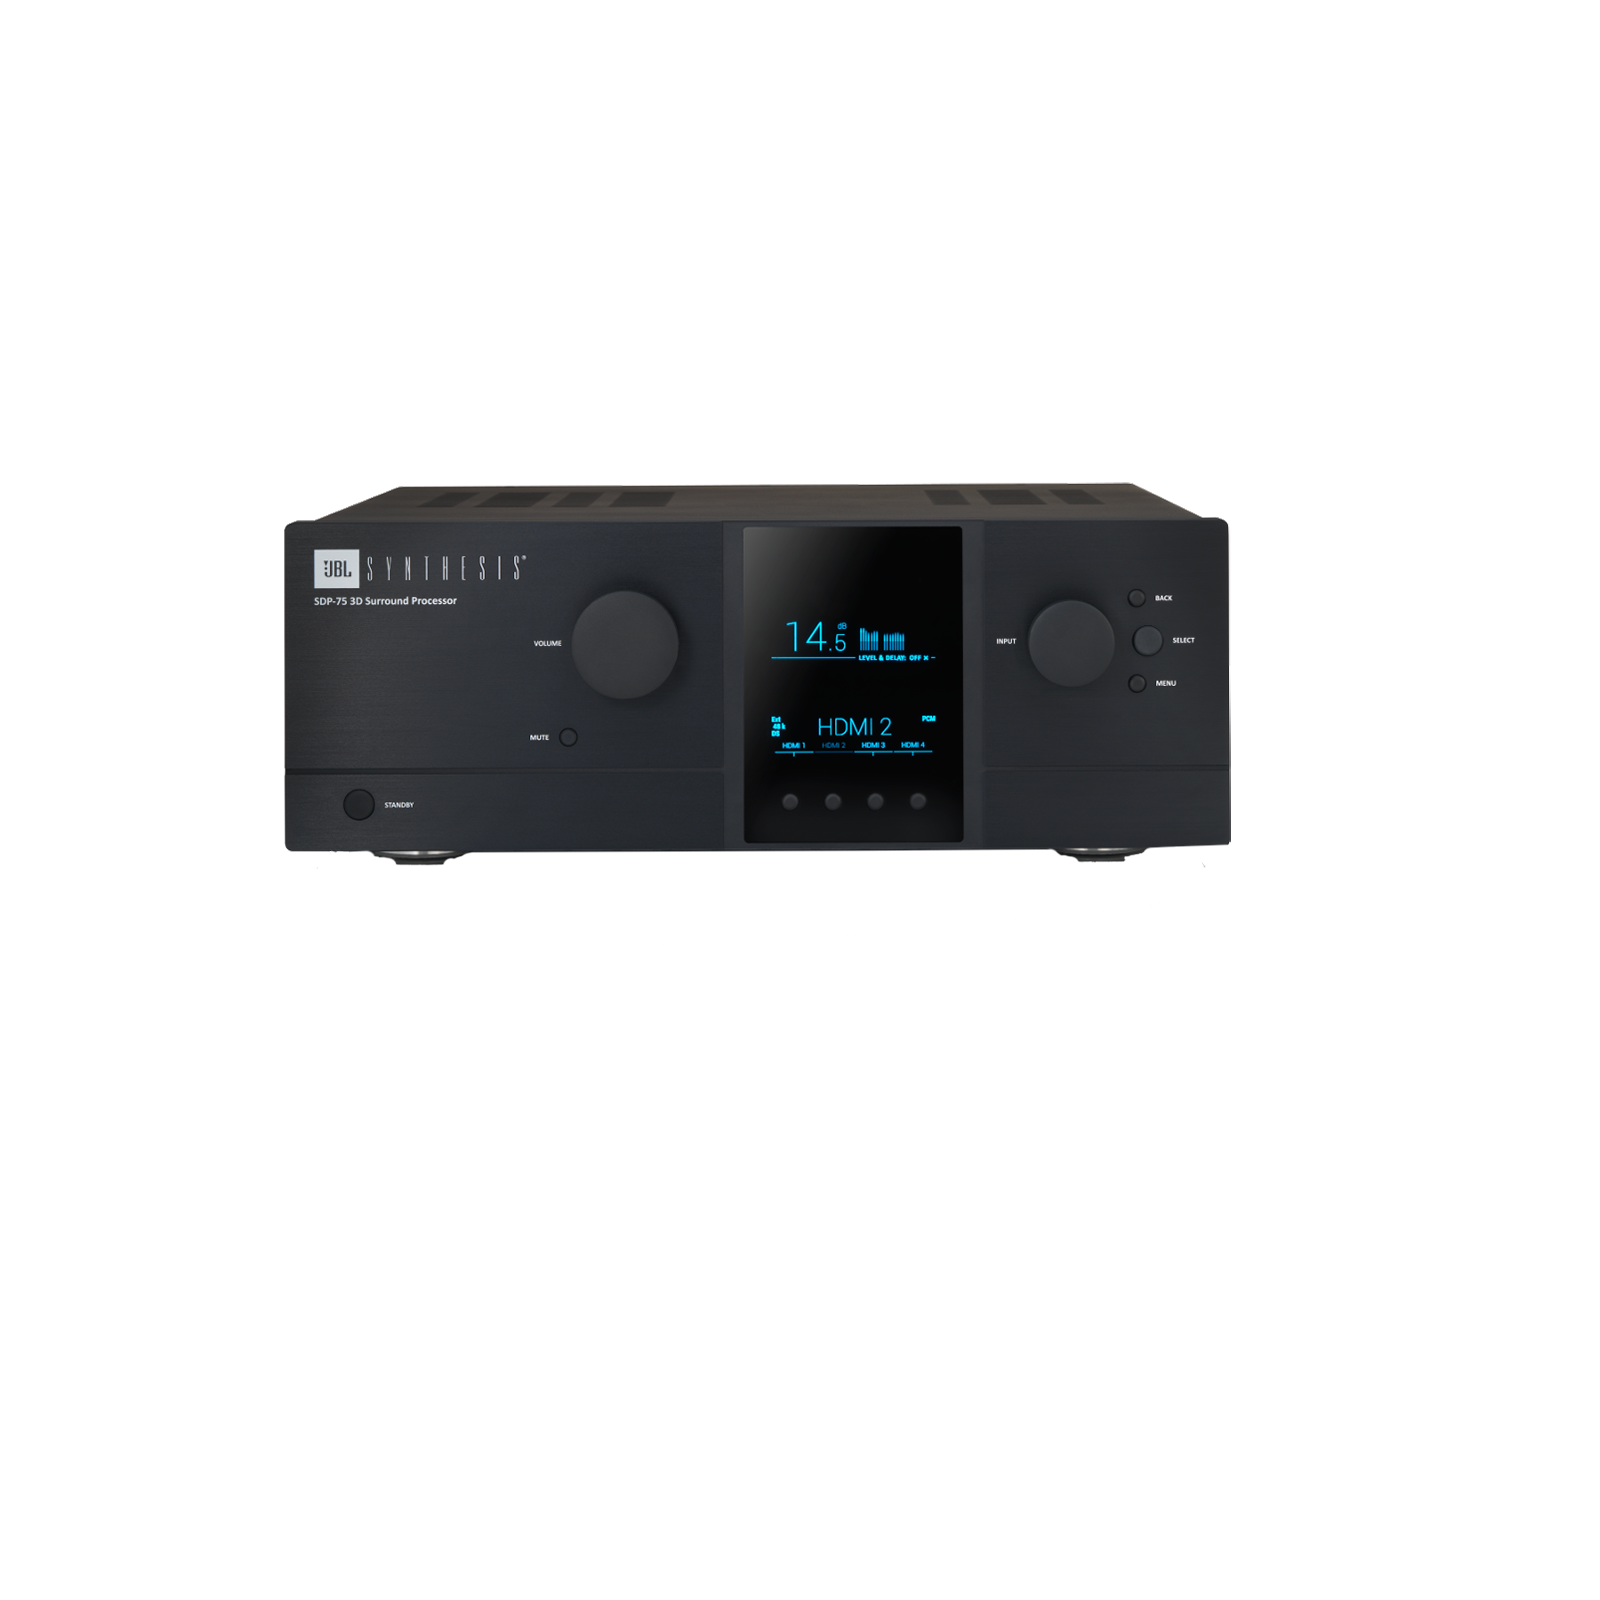 SDP-75 - Black - Luxury Home Cinema Processor Driven by 3D Audio and 4K Ultra HD - Front